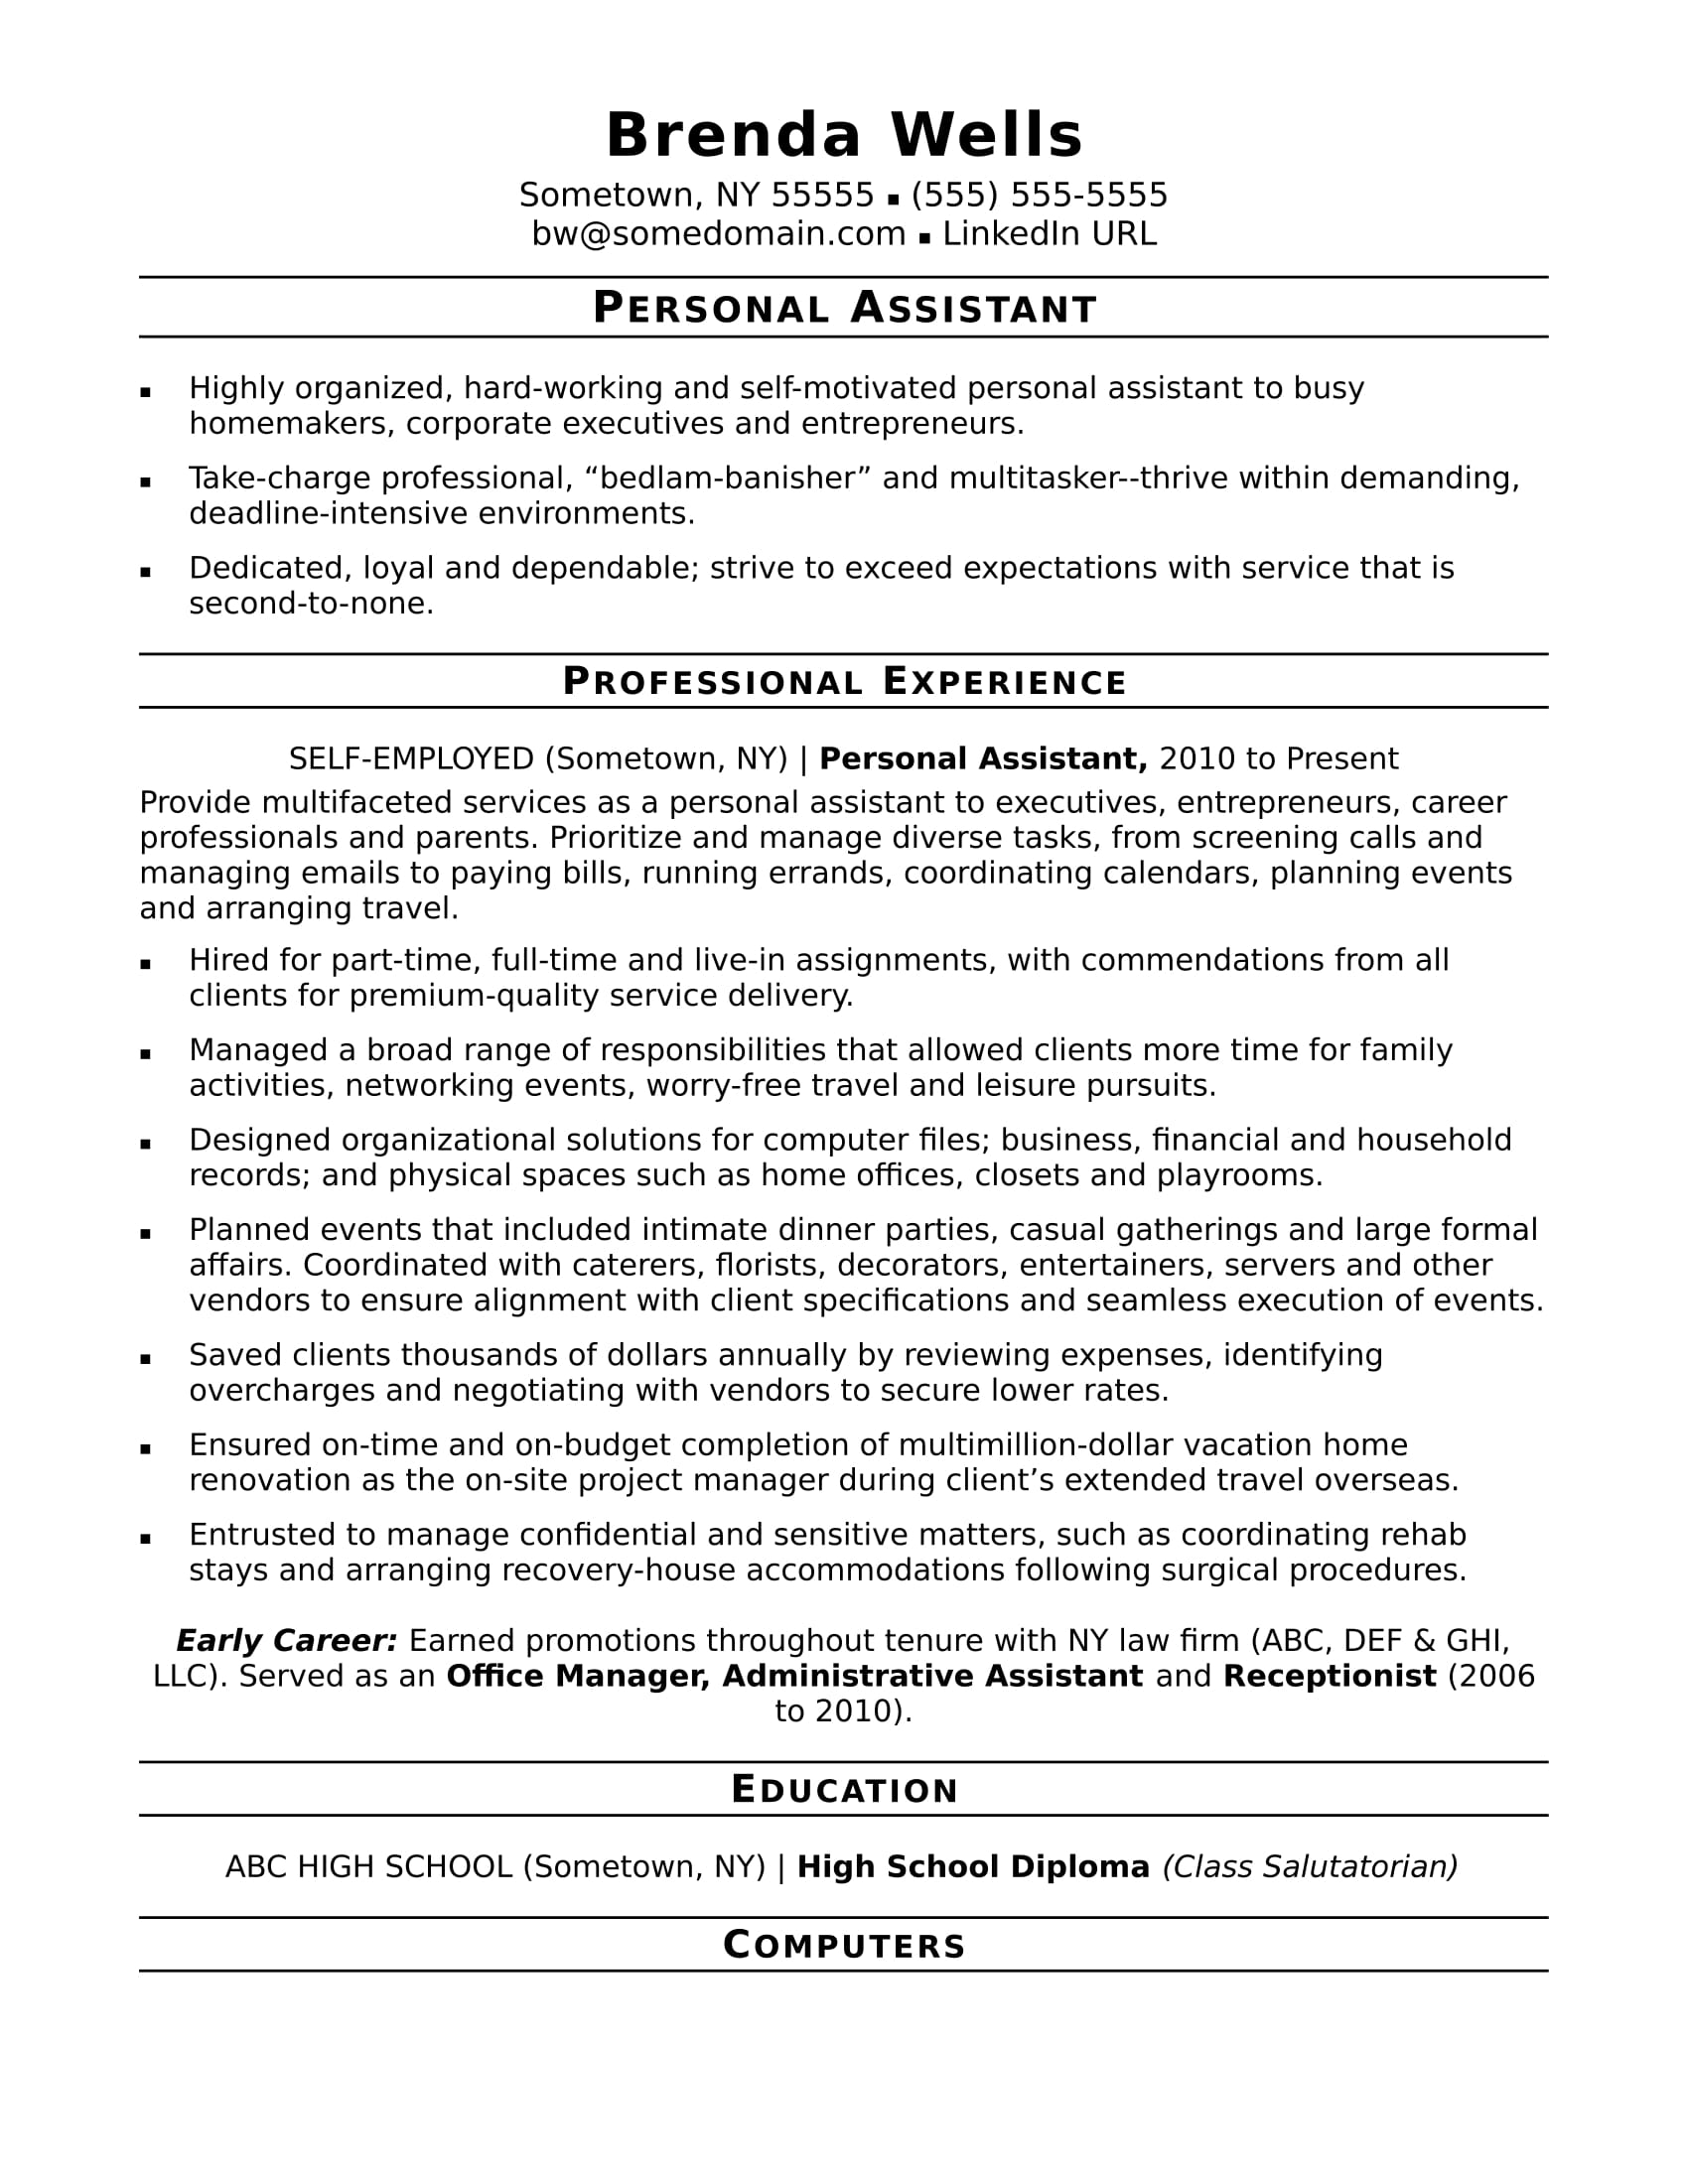 Personal Assistant Resume Sample | Monster.com